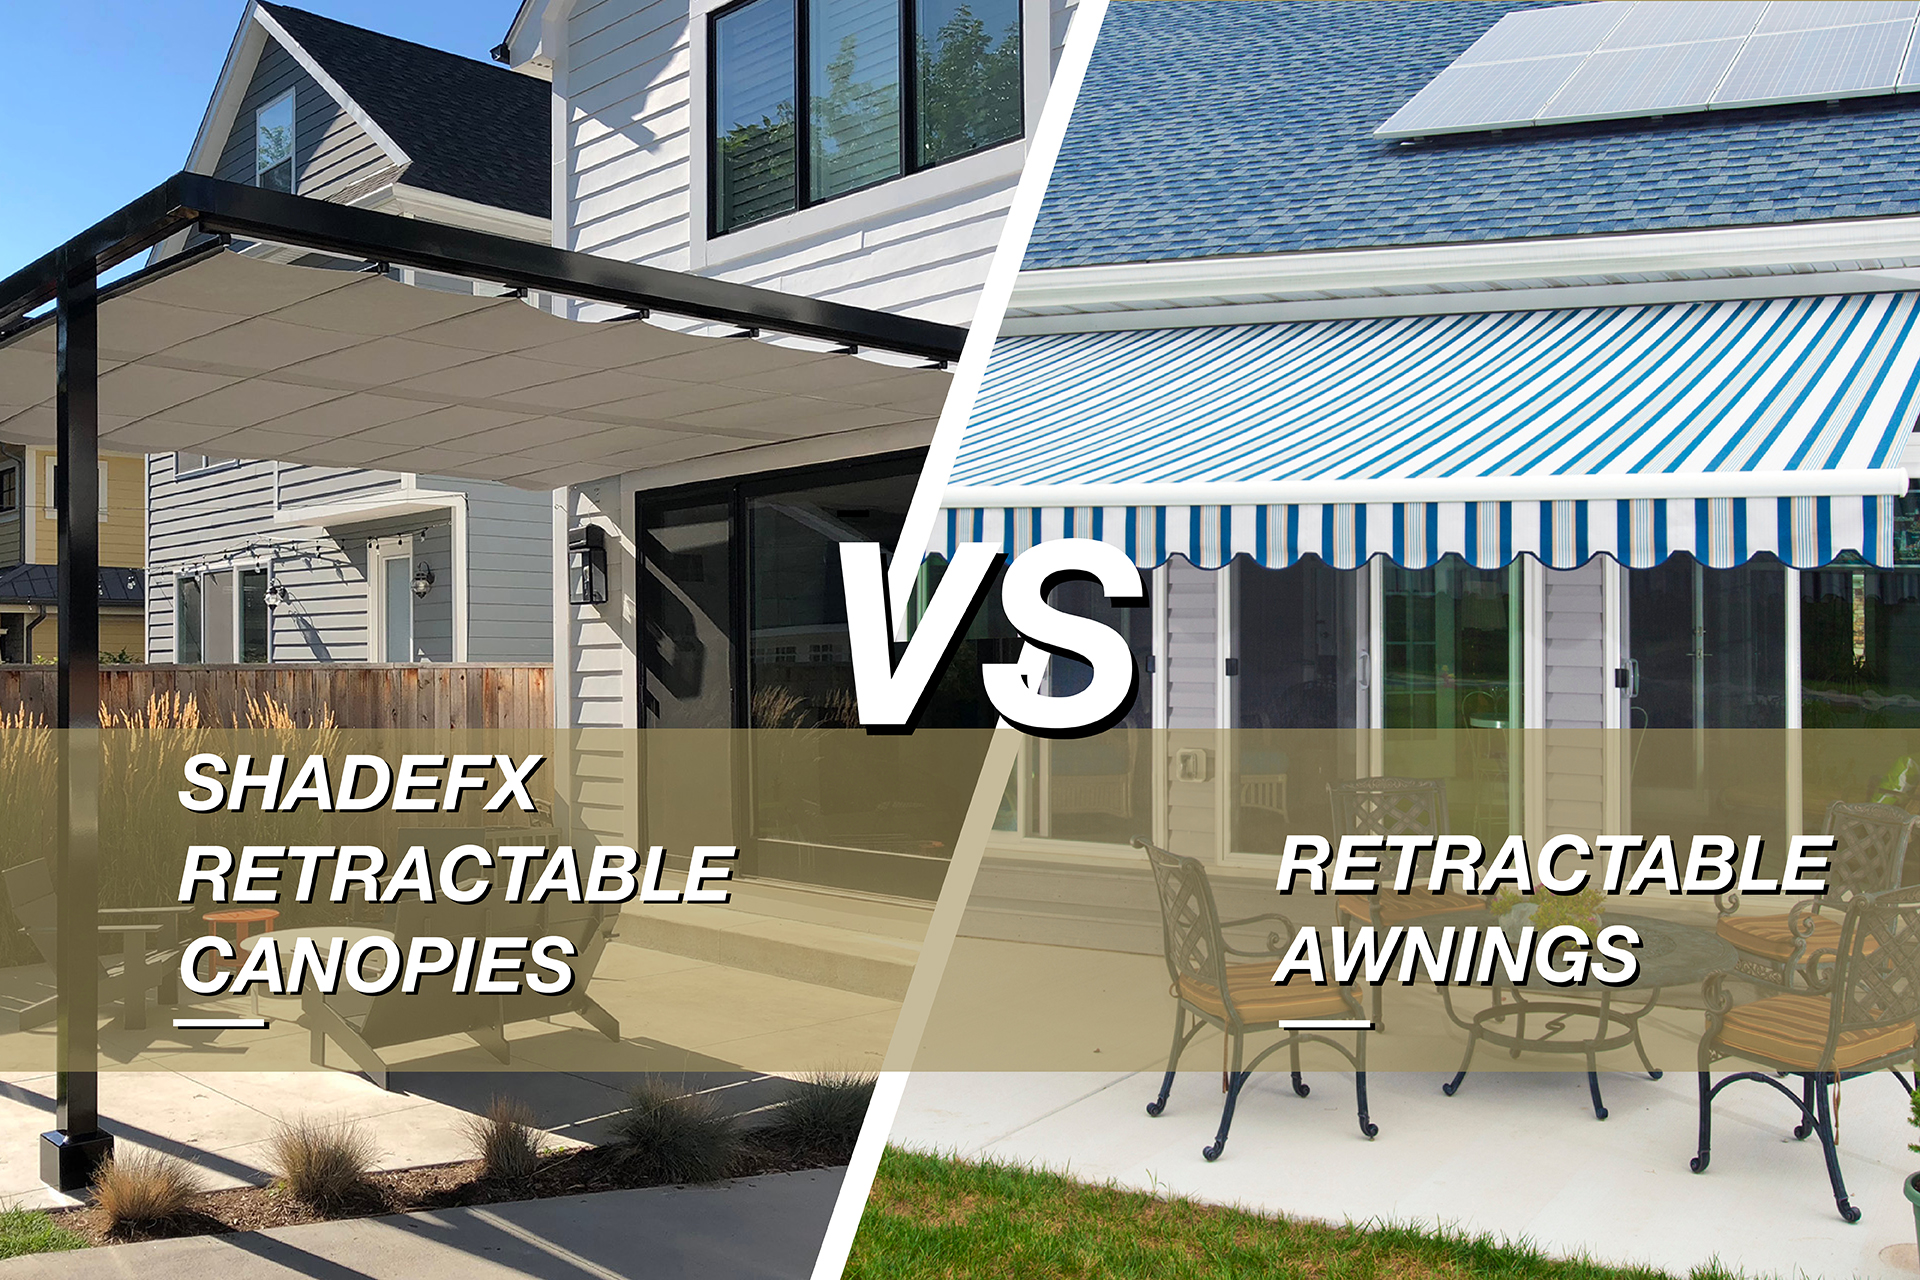 Covering The Competition Shadefx Vs Retractable Awnings Shadefx